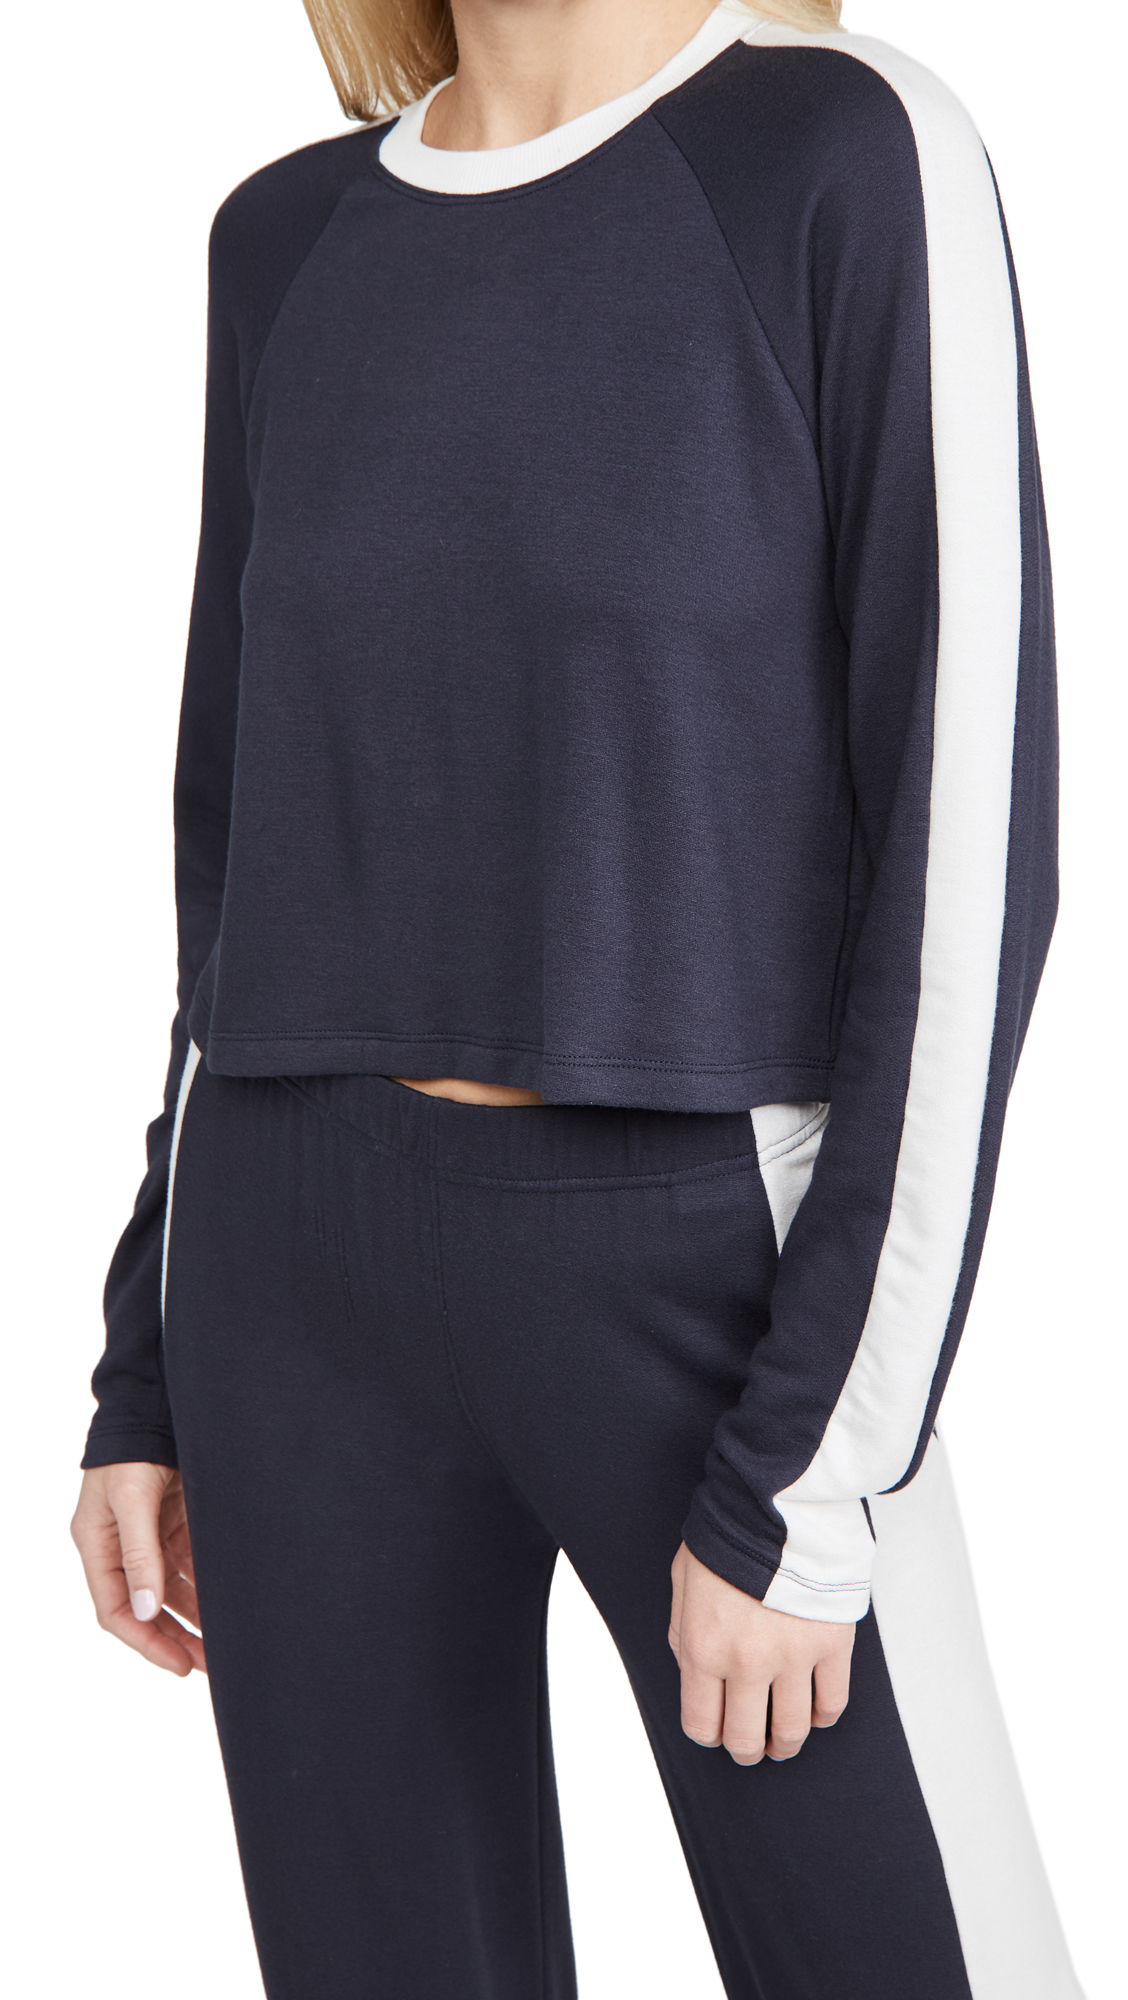 Splits59 Kingsley Fleece Pullover